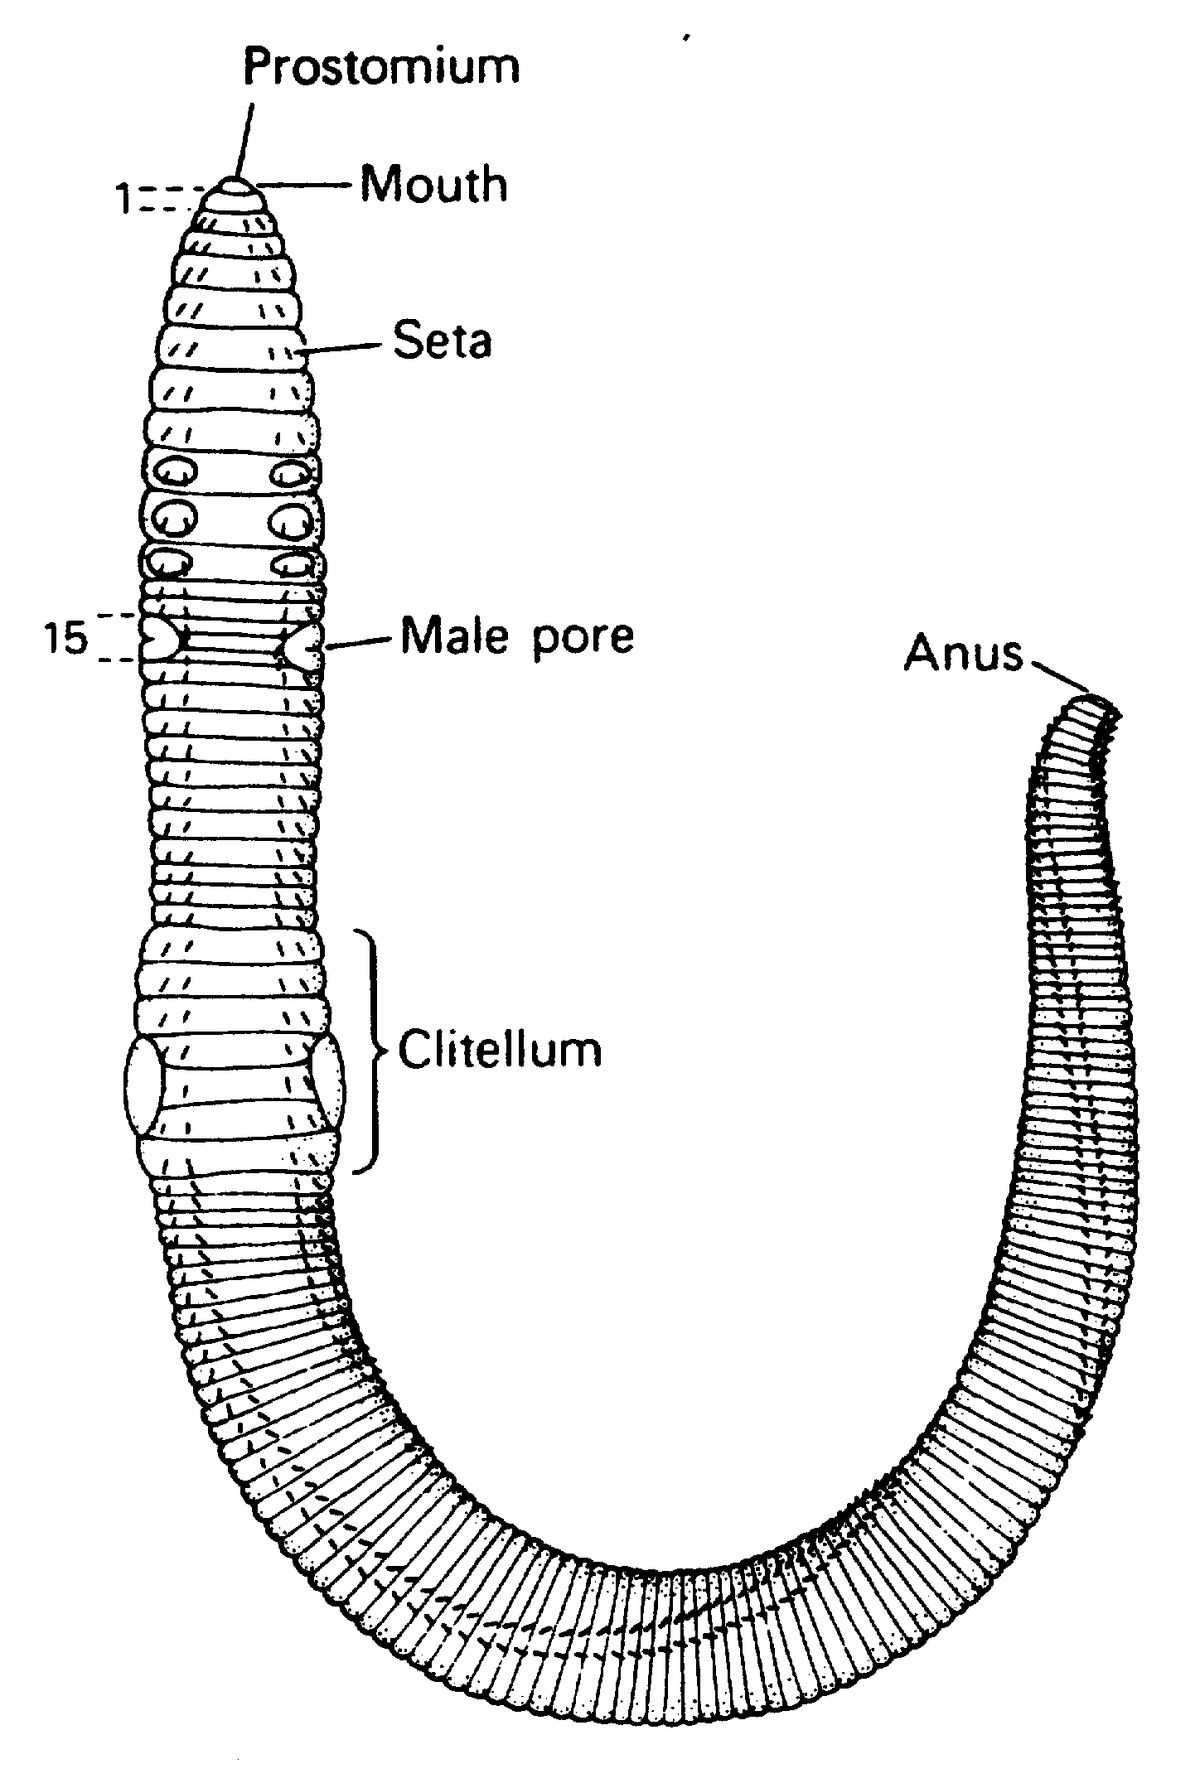 Image of: Mcat Science And Nature Worms Biology Animals And Pets Diagram Chapter Pinterest Pin By Jane Wilson On Kingdom Animalia Biology Worms Diagram